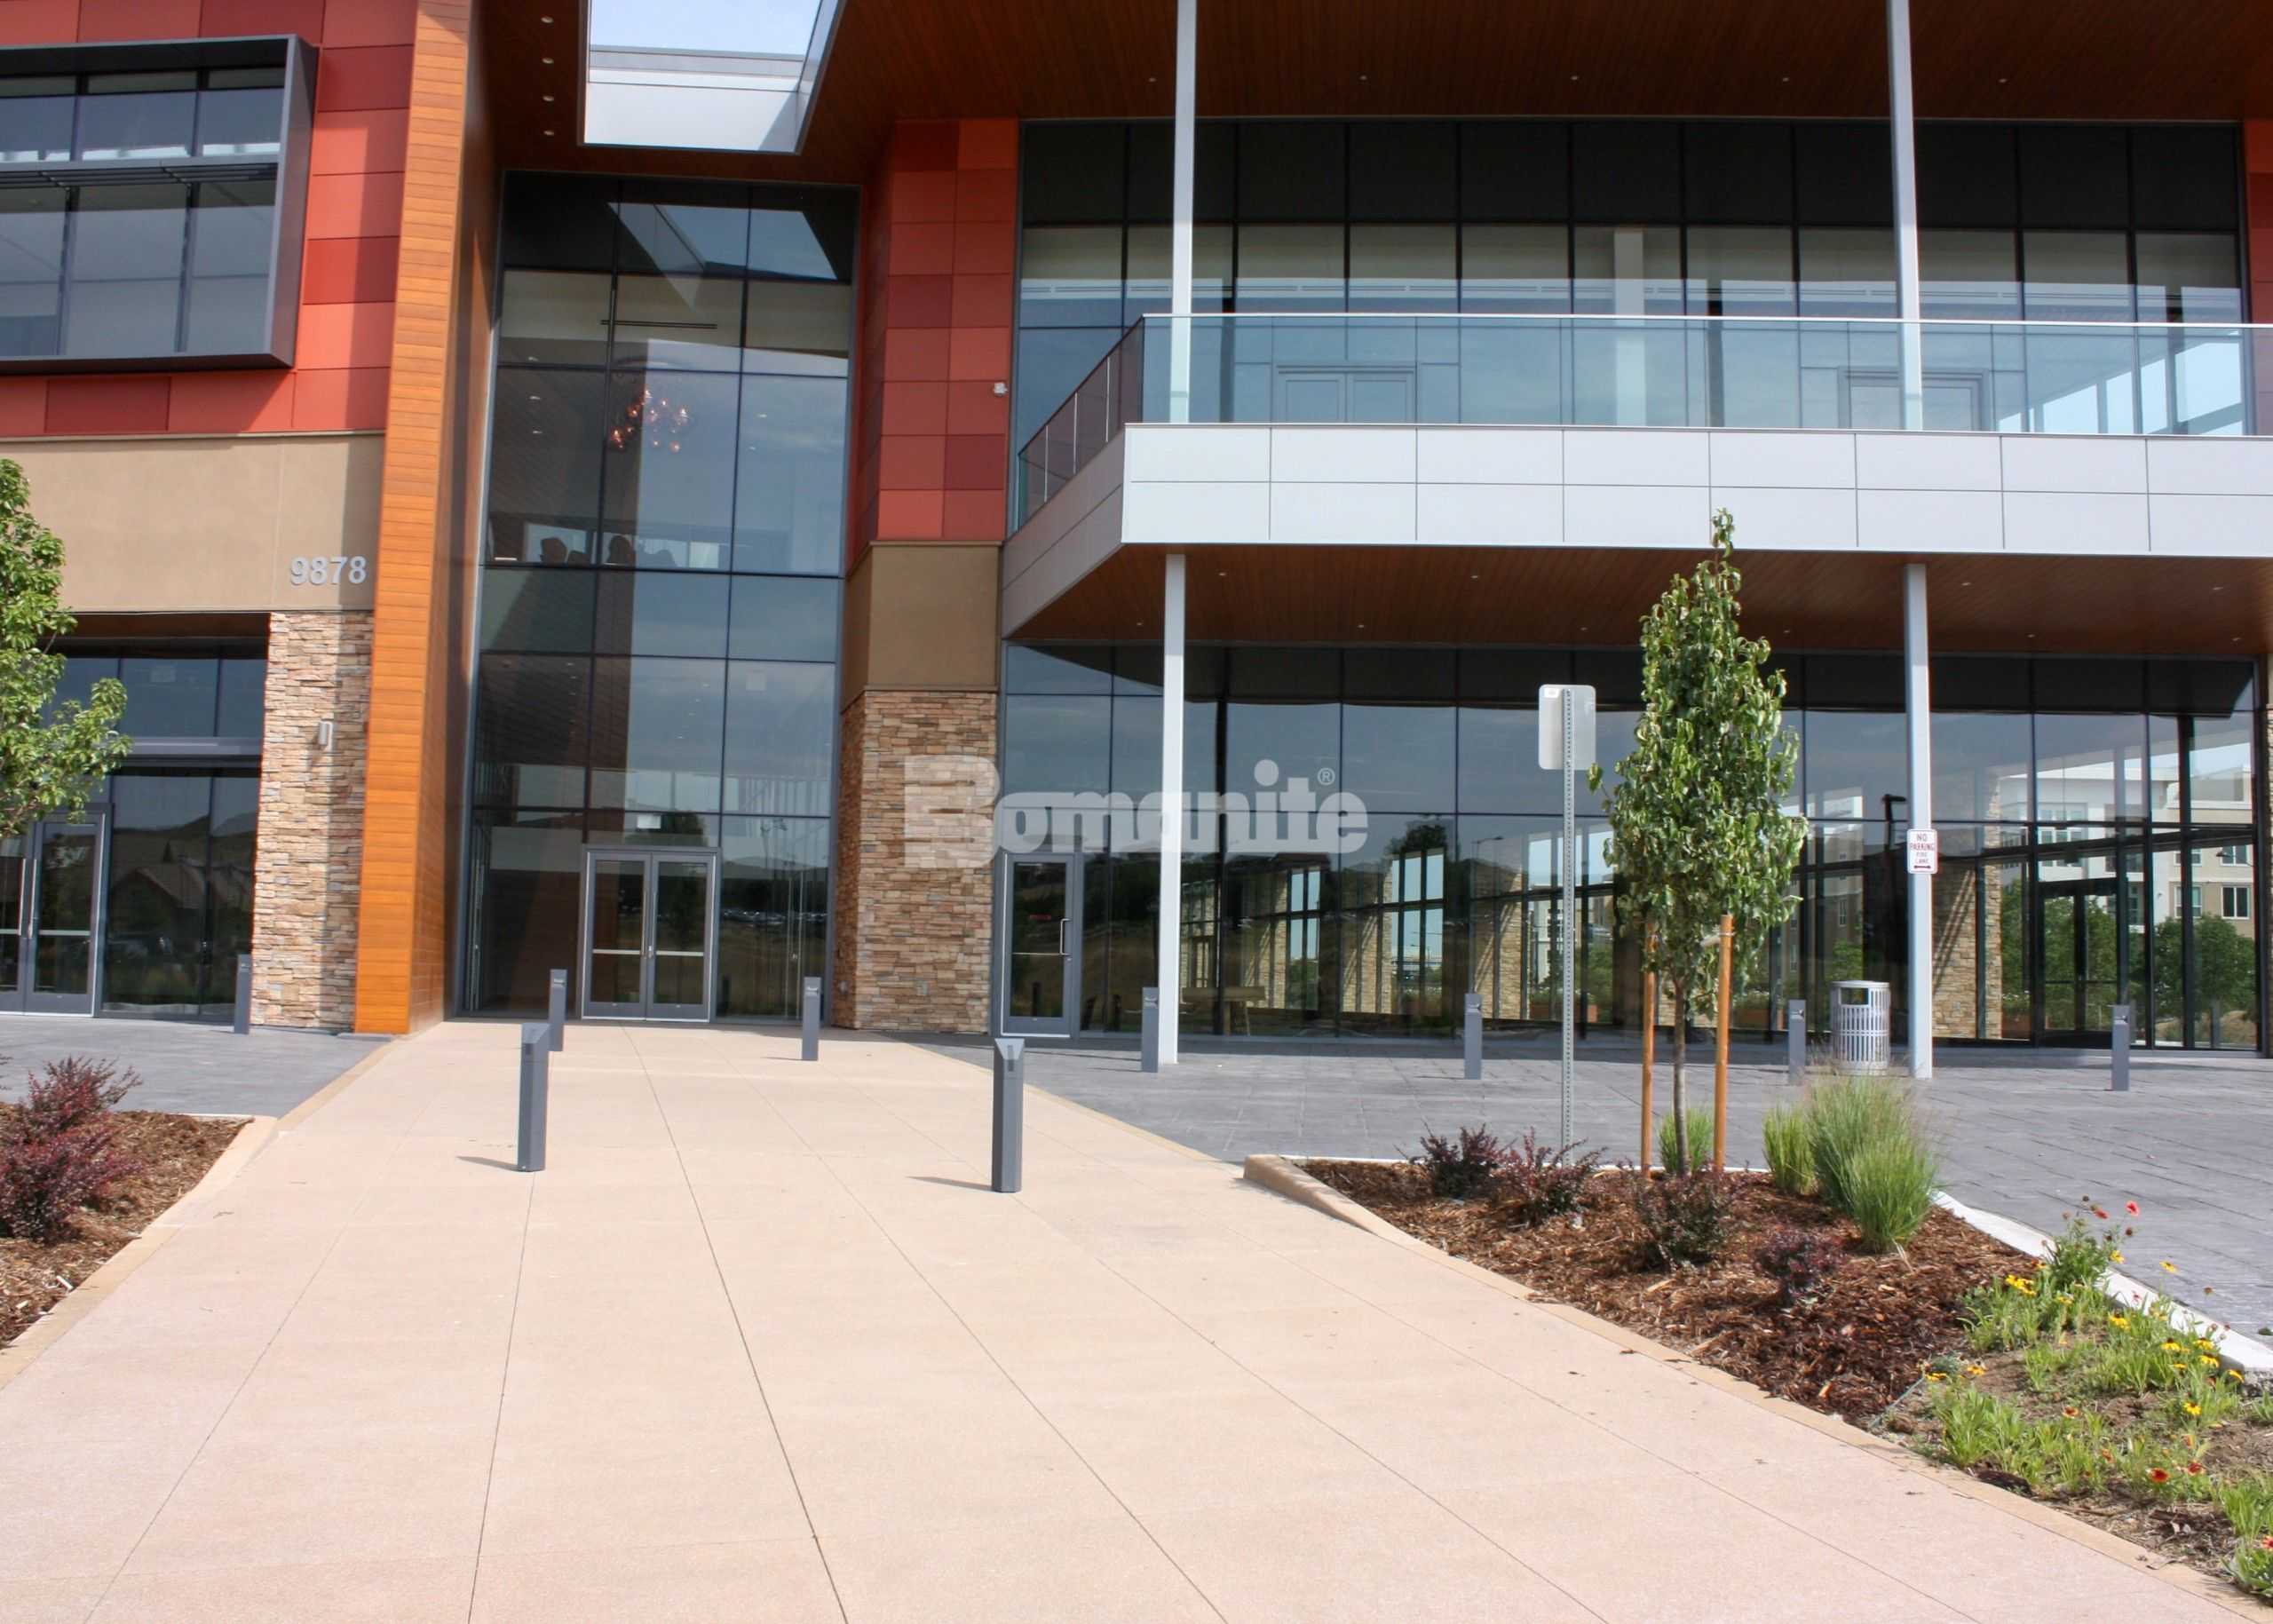 Colorado Hardscapes Installs Award Winning Bomanite Decorative Concrete Details for The Charles Schwab Conference Center at Ridgegate with Bomanite Imprint Systems in an English Sidewalk Slate Pattern for the Entry Way and surrounding drive areas.